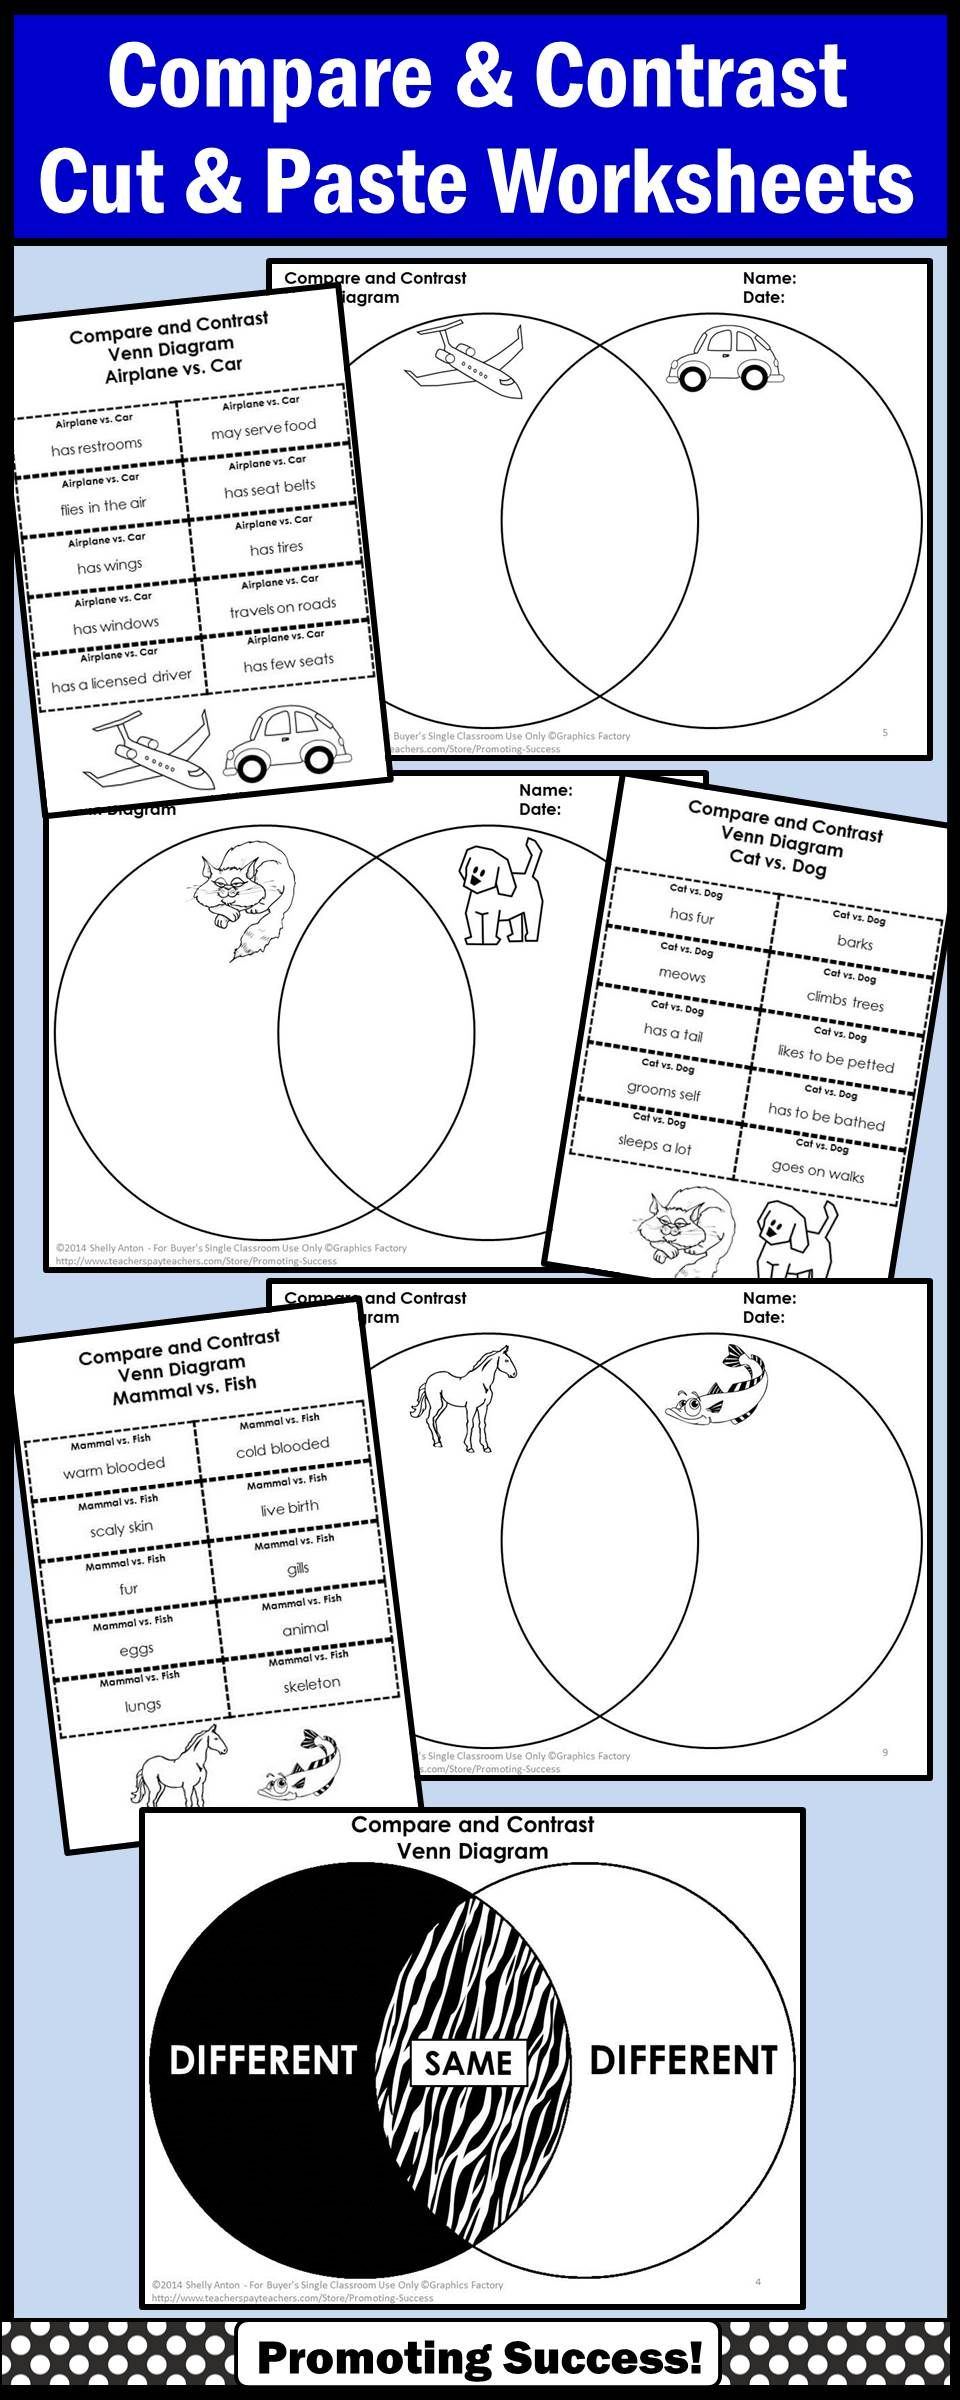 Compare and contrast activities venn diagram cut and paste graphic compare and contrast with venn diagrams students will use printable venn diagram worksheets to compare ccuart Gallery